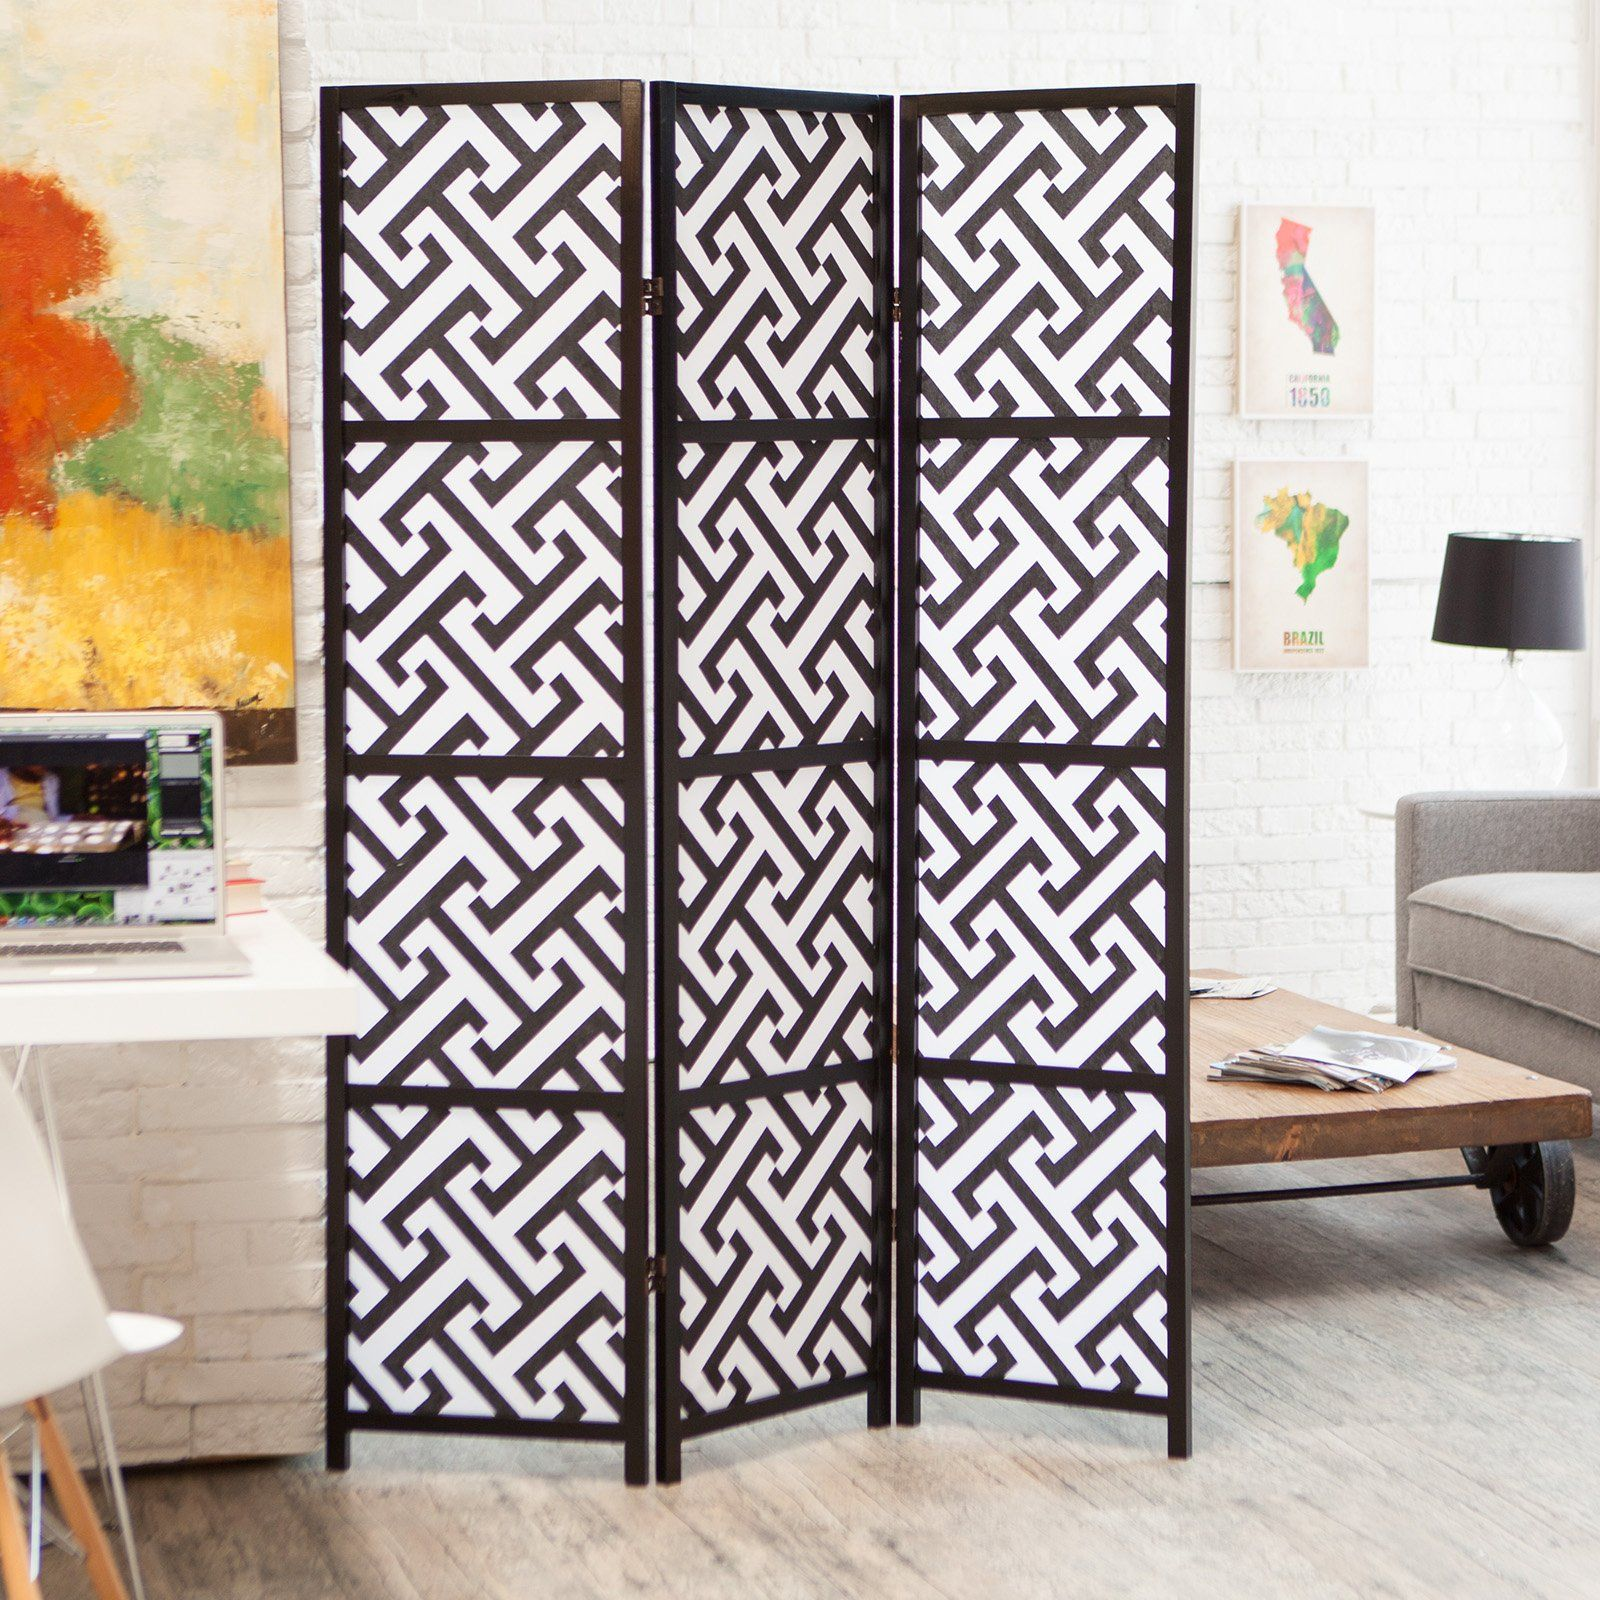 Pin On Decorating Ideas Accent furniture room dividers